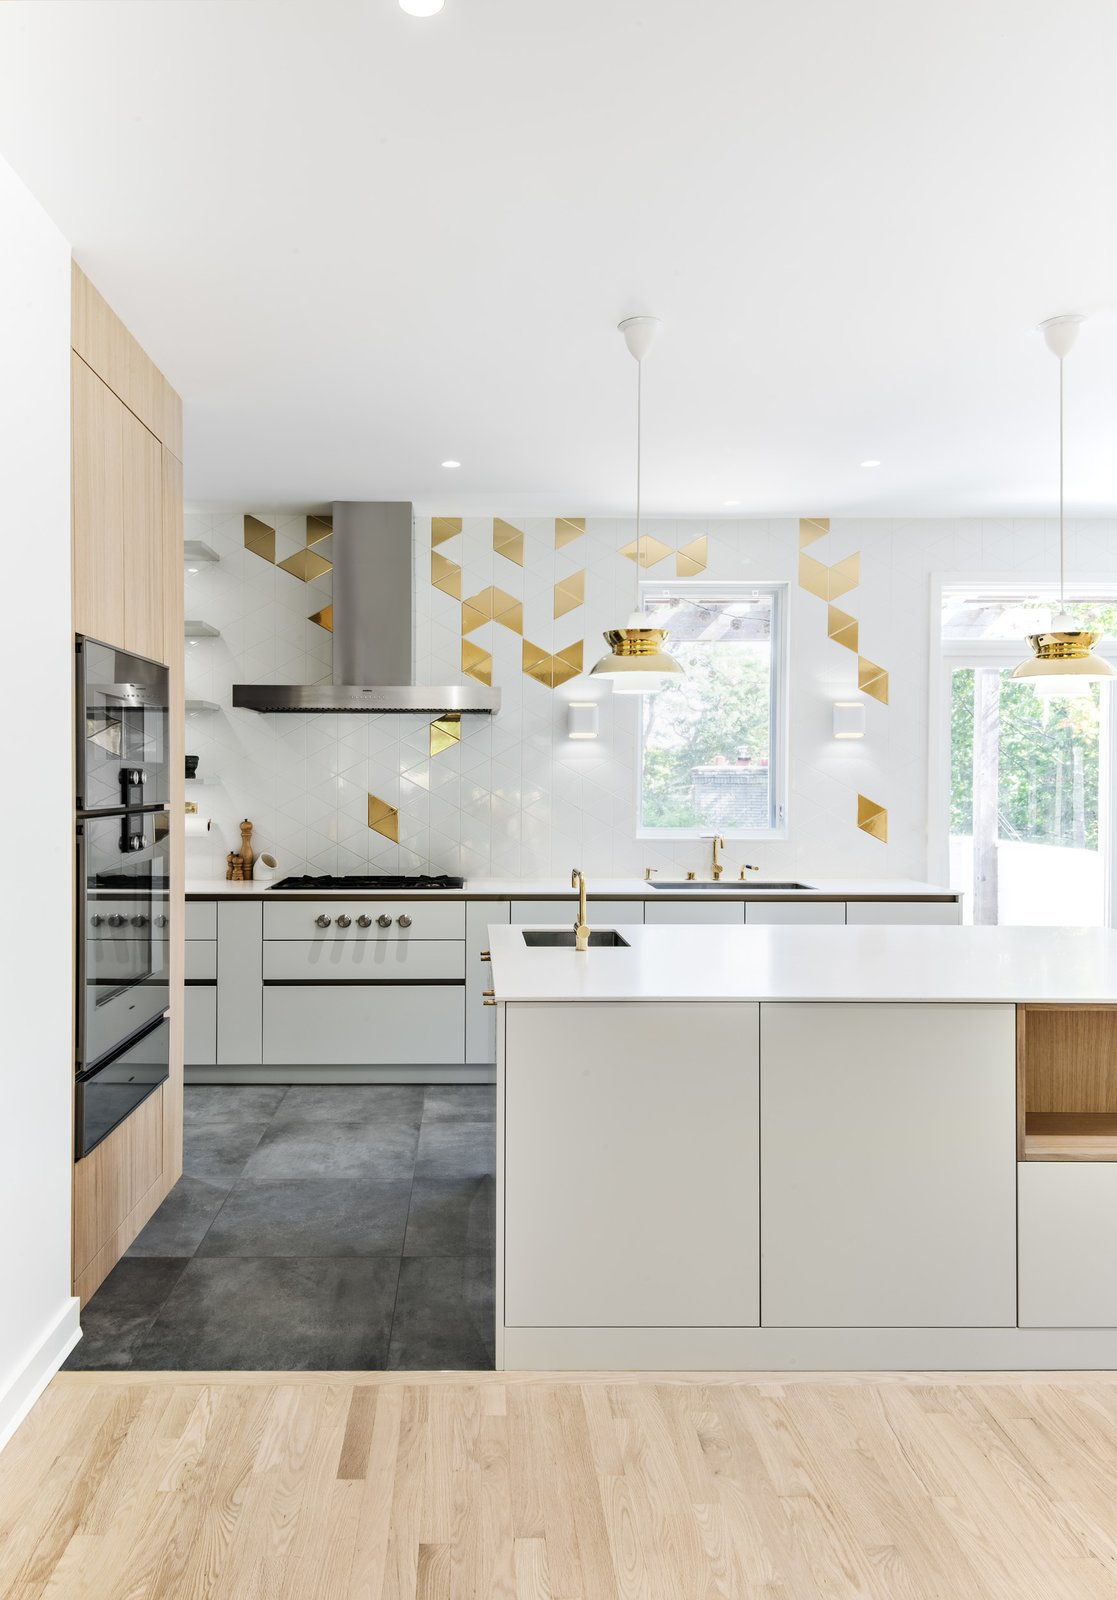 Kitchen, Engineered Quartz, Range Hood, Porcelain Tile, Cooktops, Wall Oven, Undermount, Wood, Ceiling, Pendant, White, Light Hardwood, and Ceramic Tile Kitchen  Kitchen Cooktops Undermount Wall Oven Ceramic Tile White Photos from The Rockcliffe Renovation